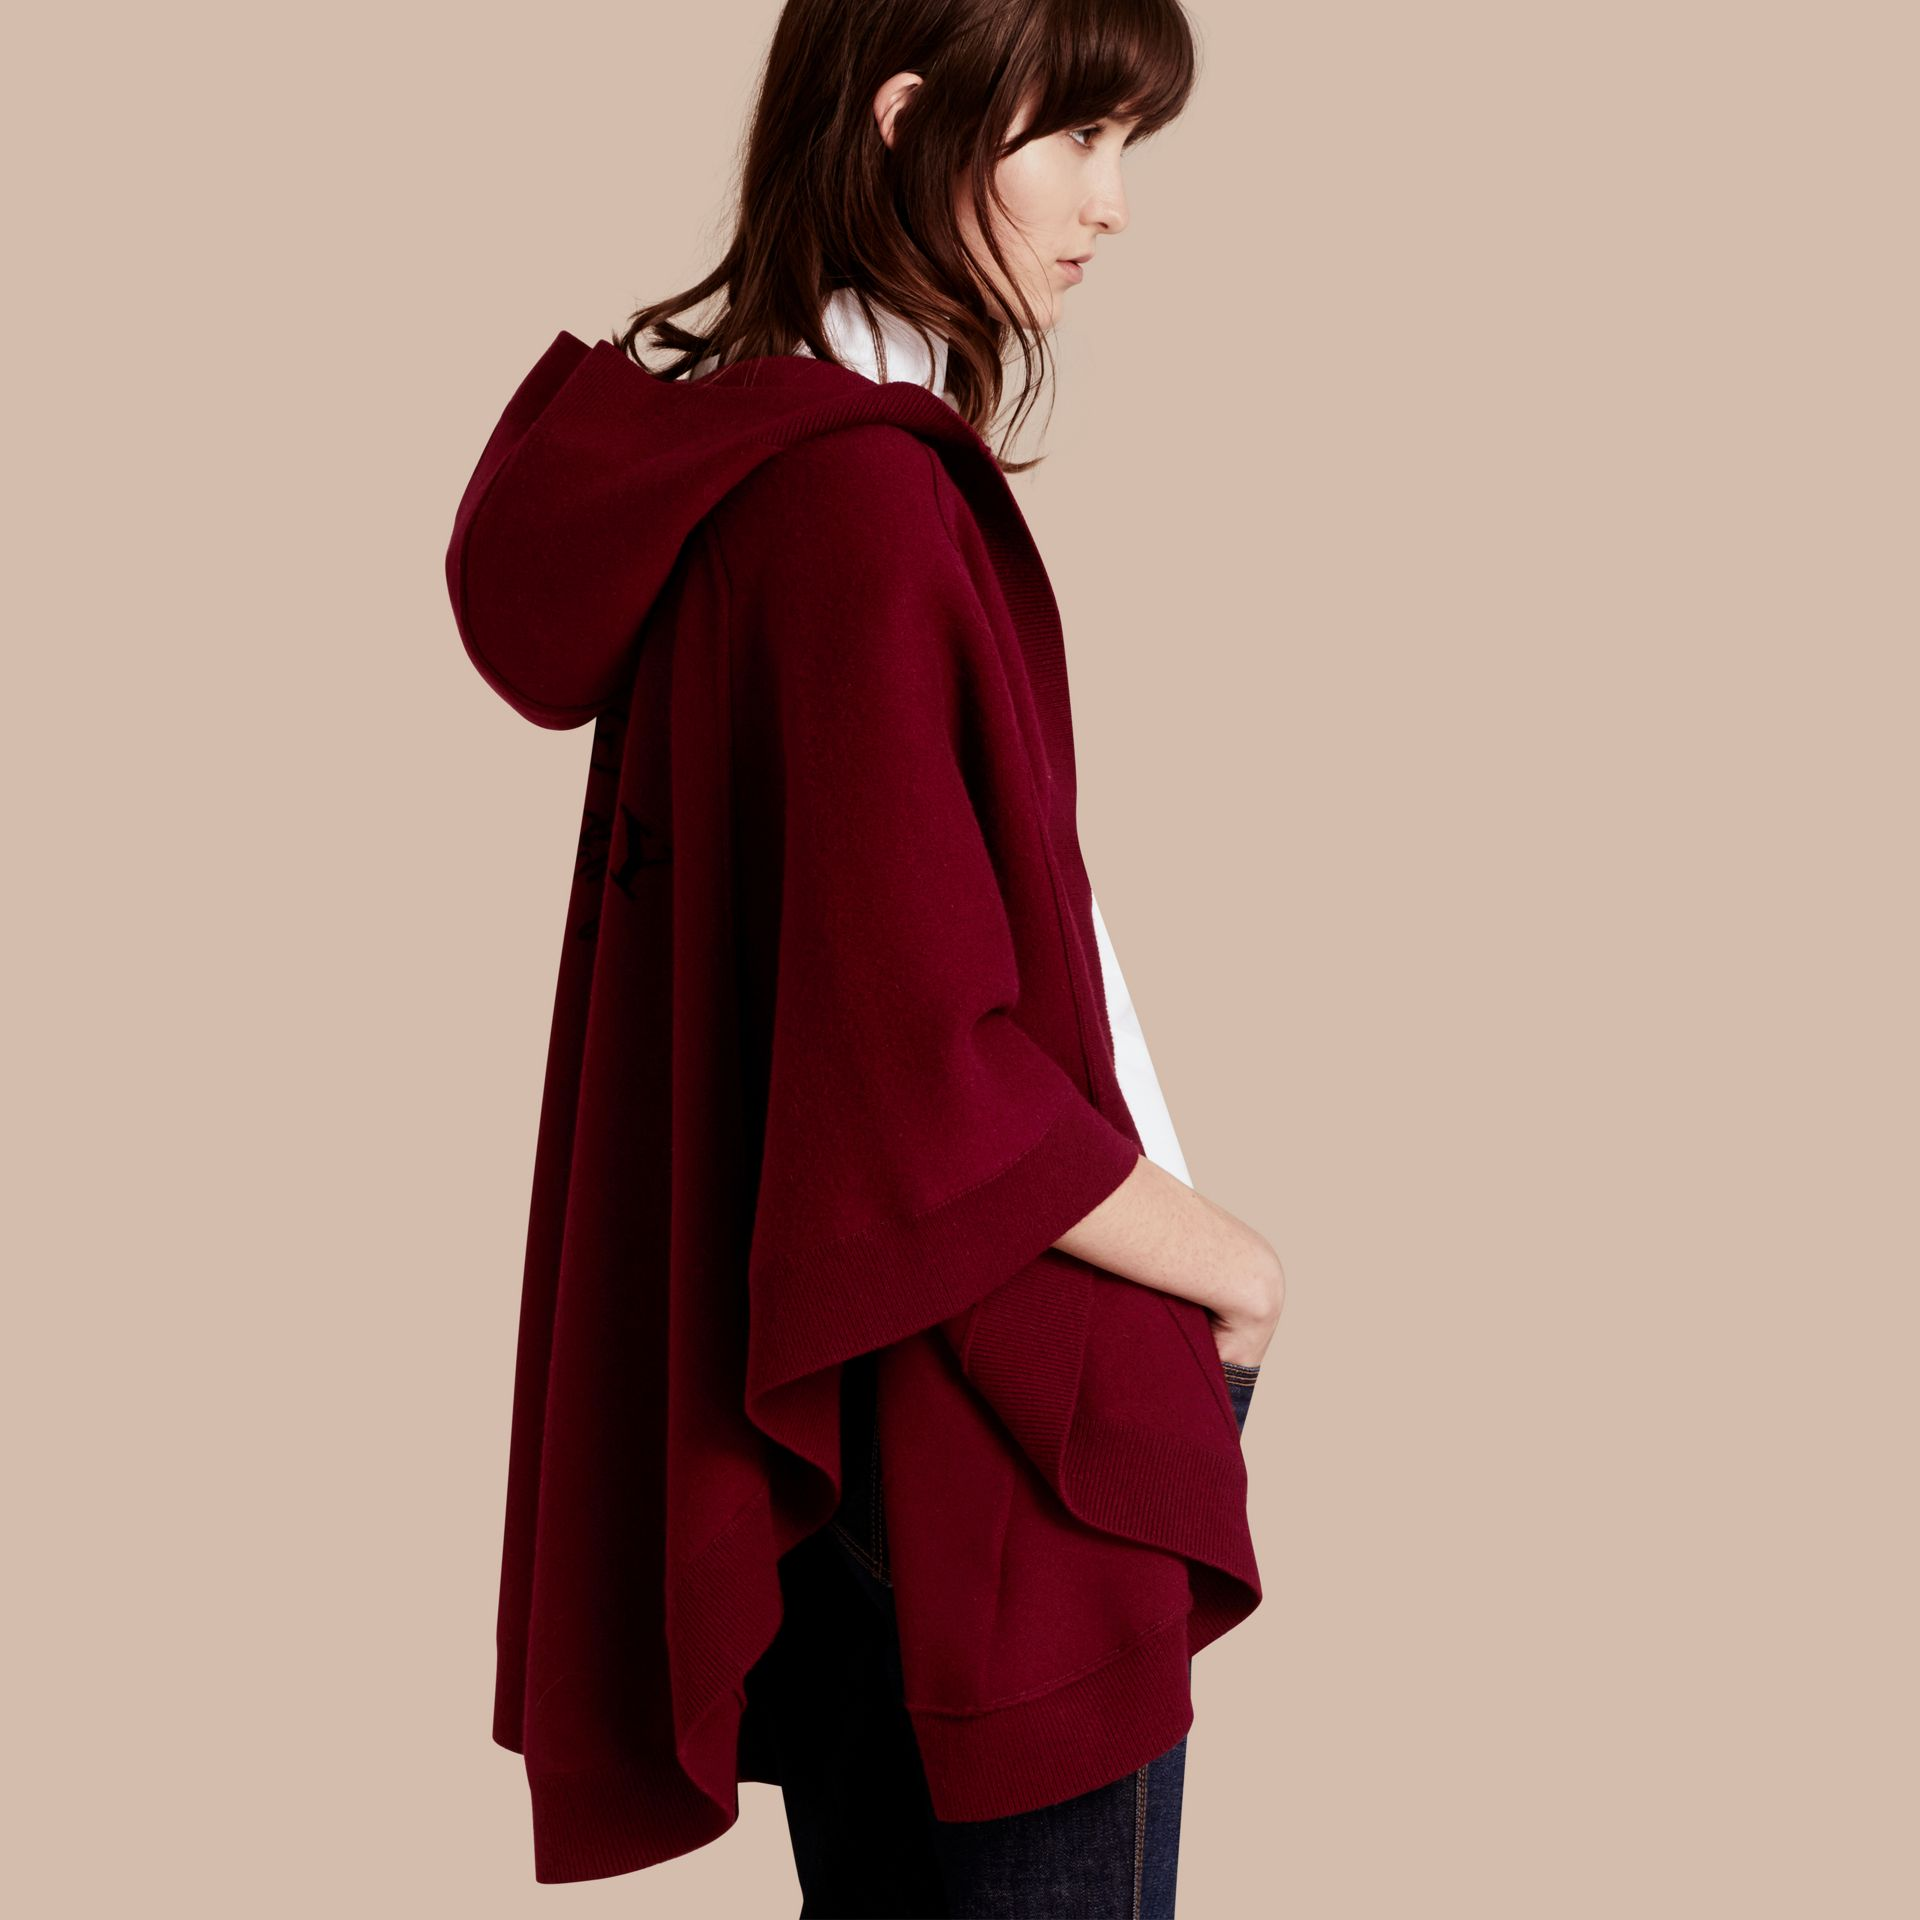 Wool Cashmere Blend Hooded Poncho in Deep Red - Women | Burberry Canada - gallery image 1